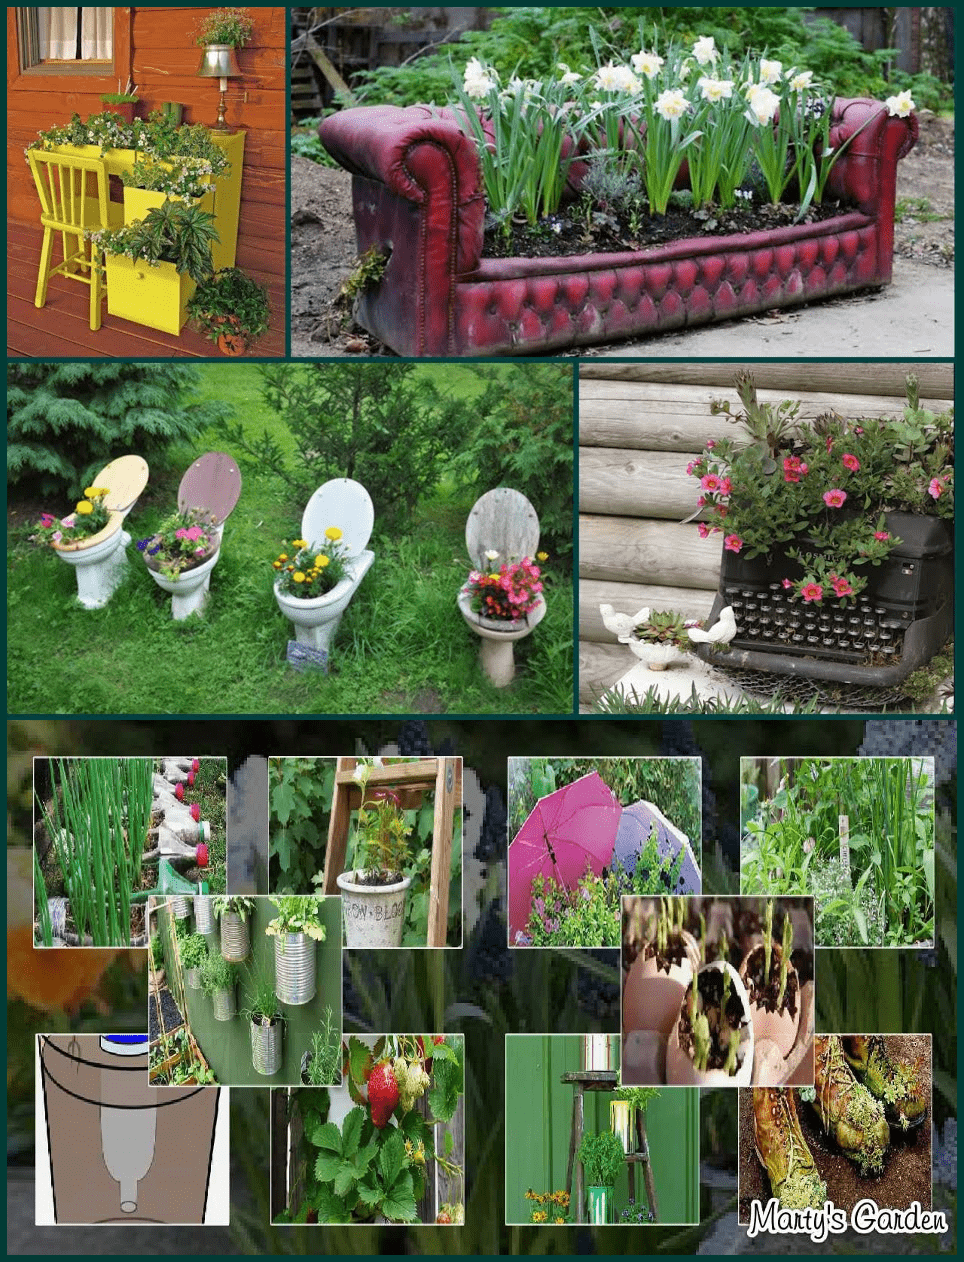 Simphome.com Garden planter ideas from recycled materials and storage